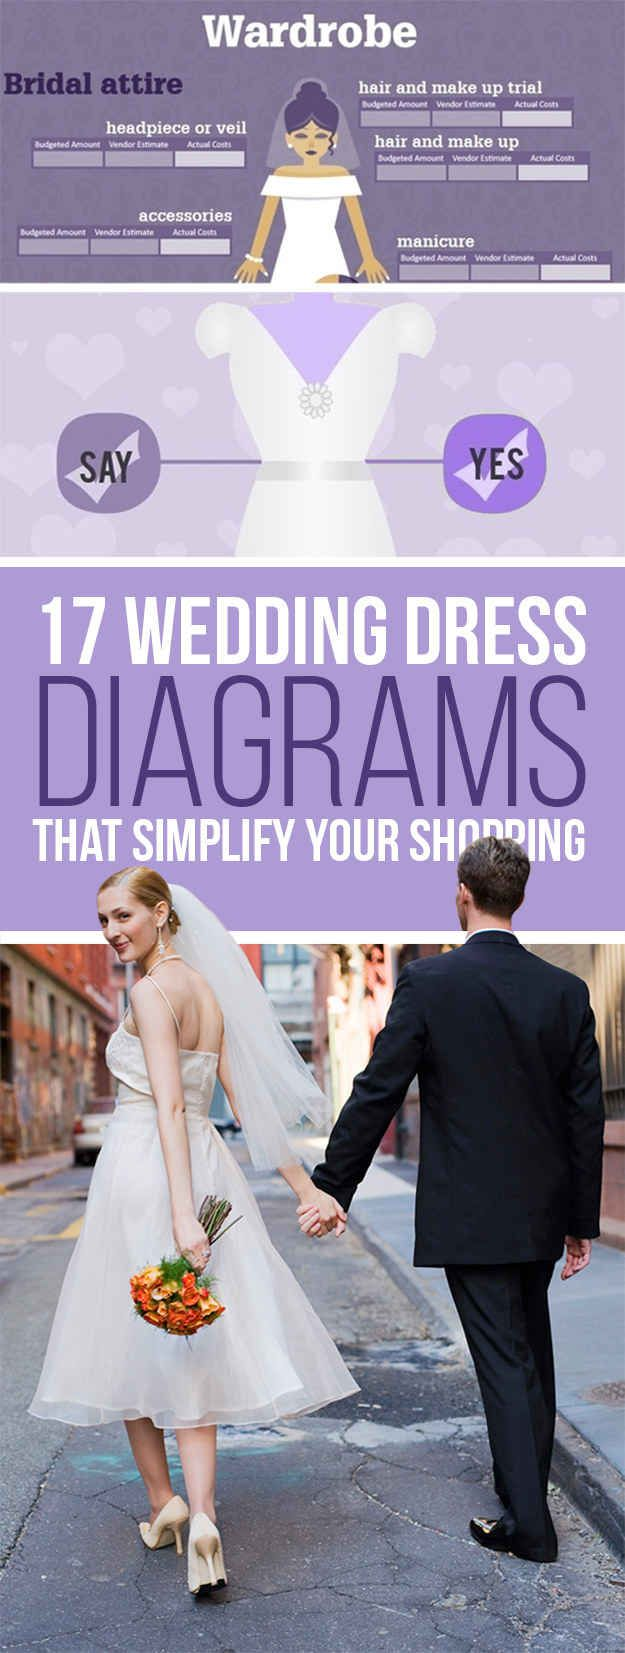 17 Wedding Dress Diagrams That Will Simplify Your Shopping: Ultimate guide to wedding atire!